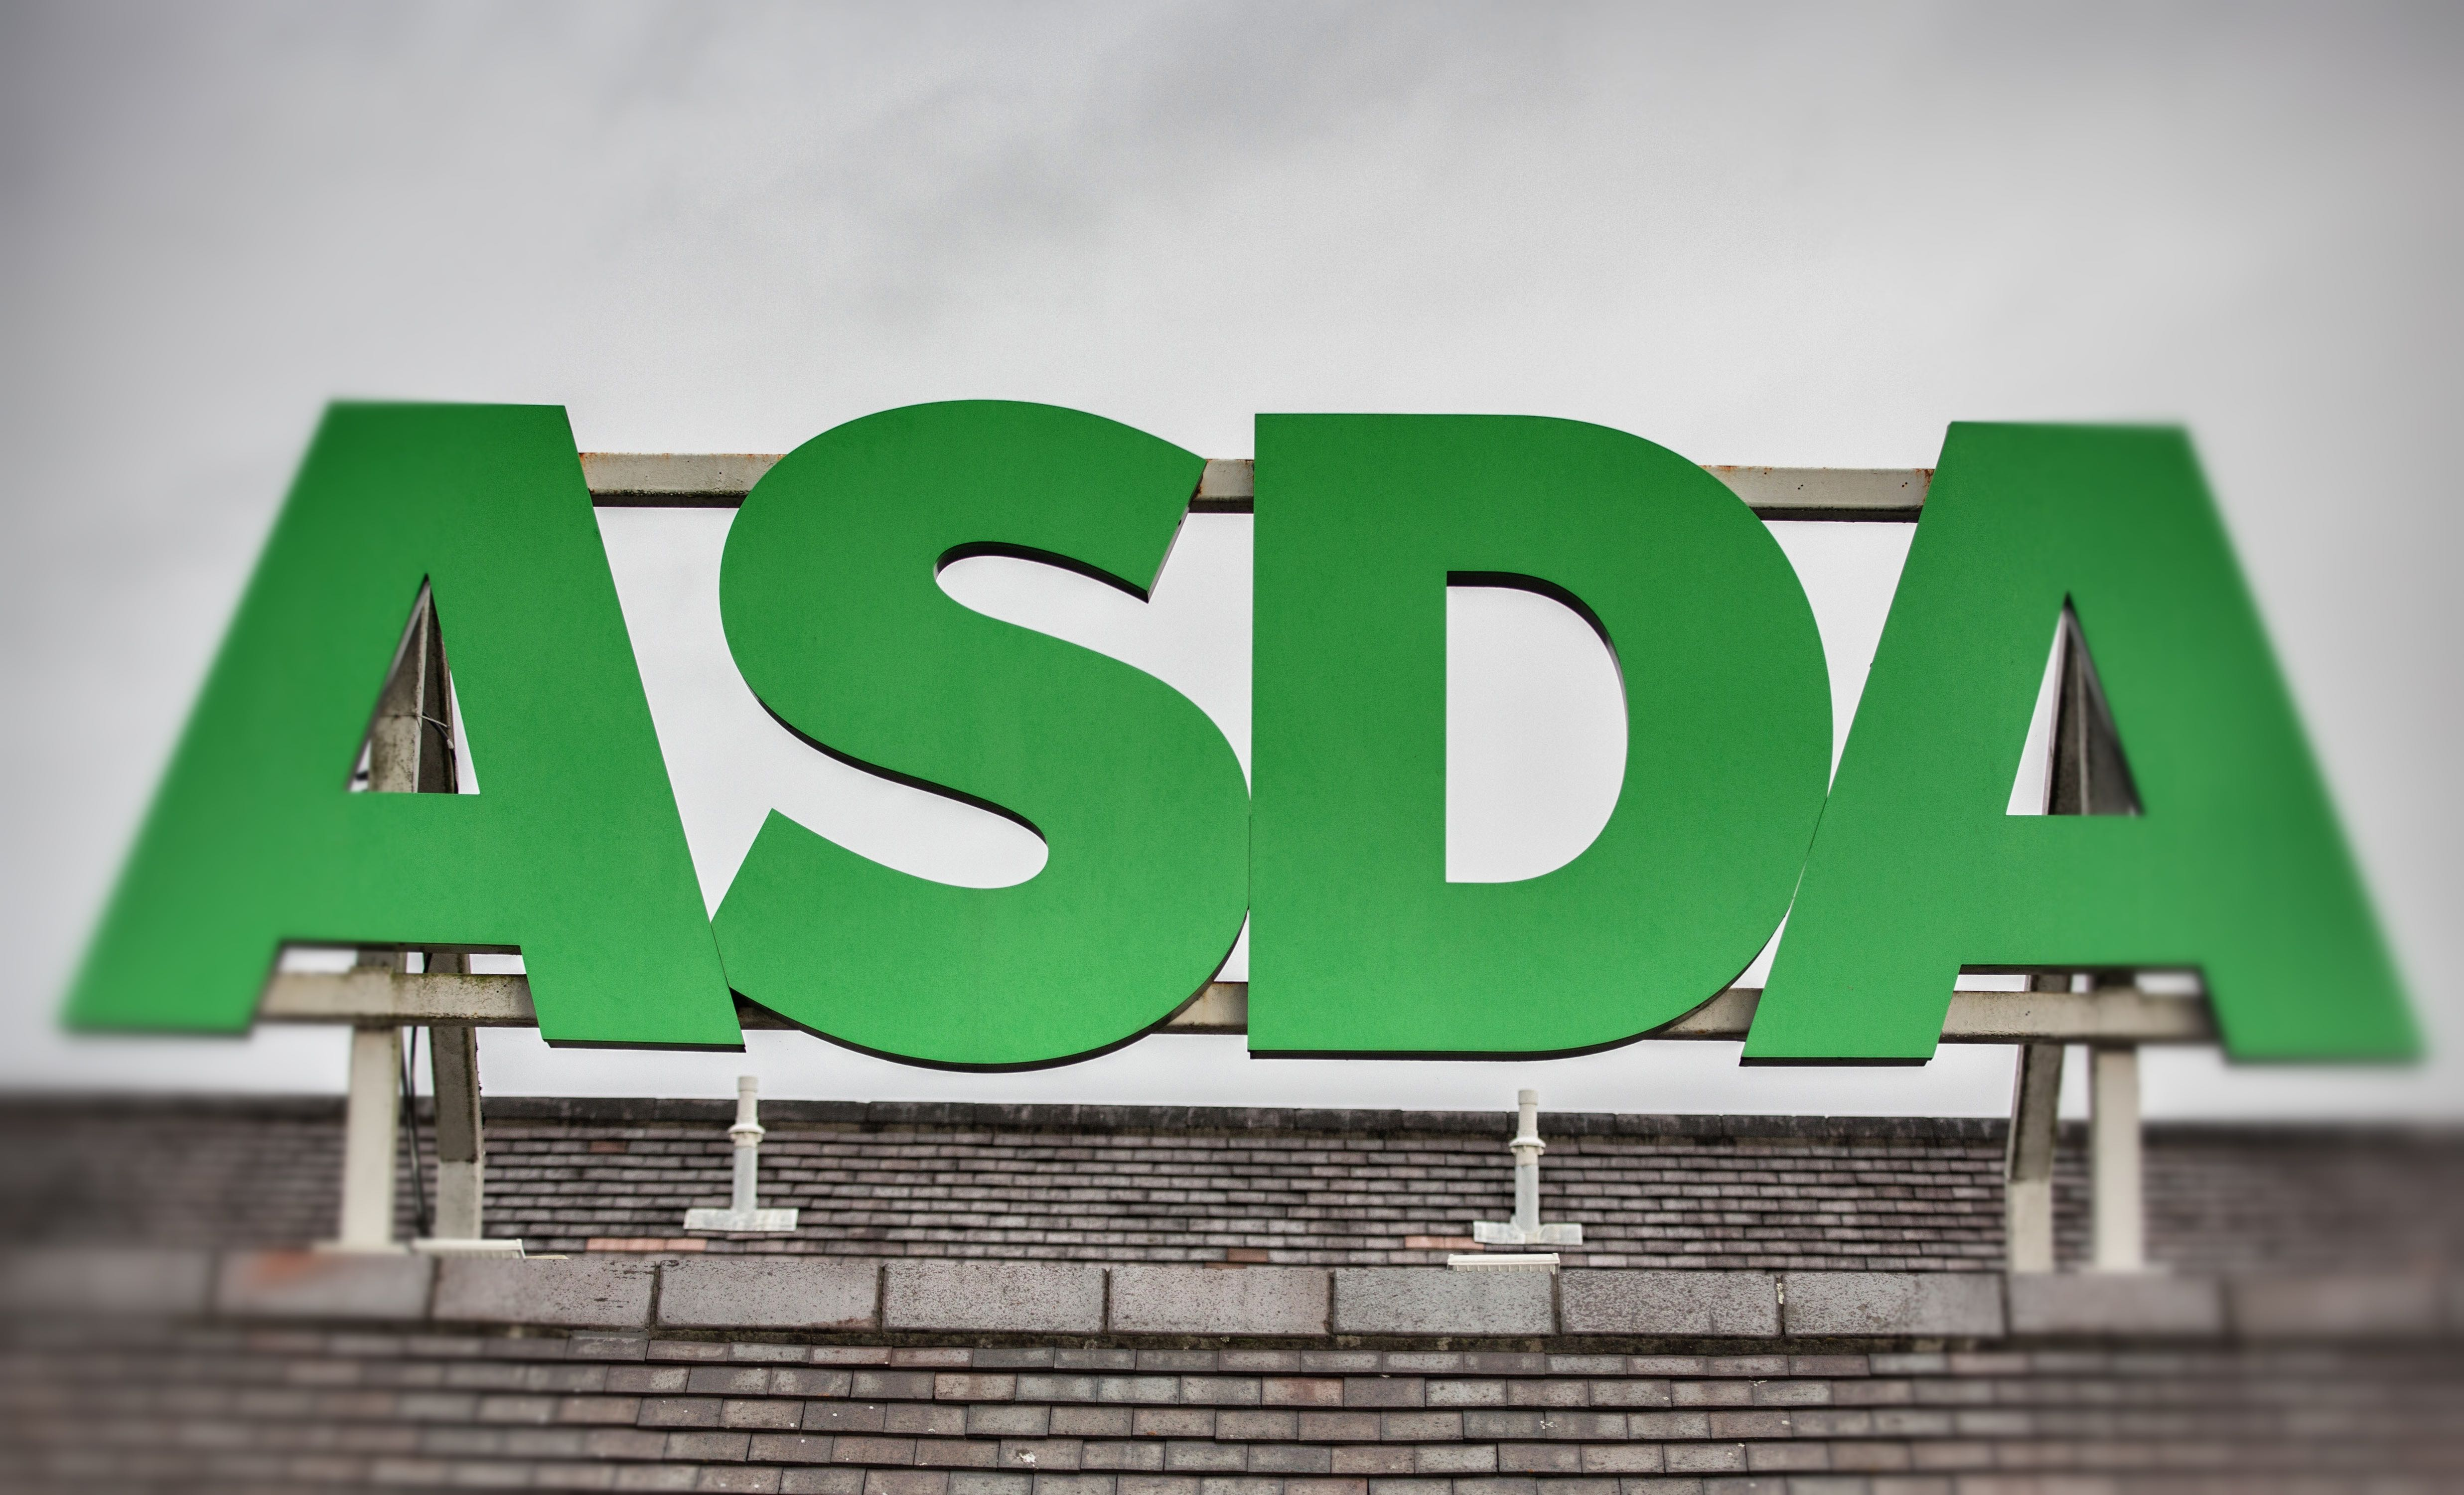 BRISTOL, ENGLAND - NOVEMBER 18: (EDITORS NOTE: This image was created using digital filters) The Asda sign is displayed outside a branch of the supermarket on November 18, 2015 in Bristol, England. As the crucial Christmas retail period approaches, all the major supermarkets are becoming increasingly competitive to retain and increase their share of the market. (Photo by Matt Cardy/Getty Images)